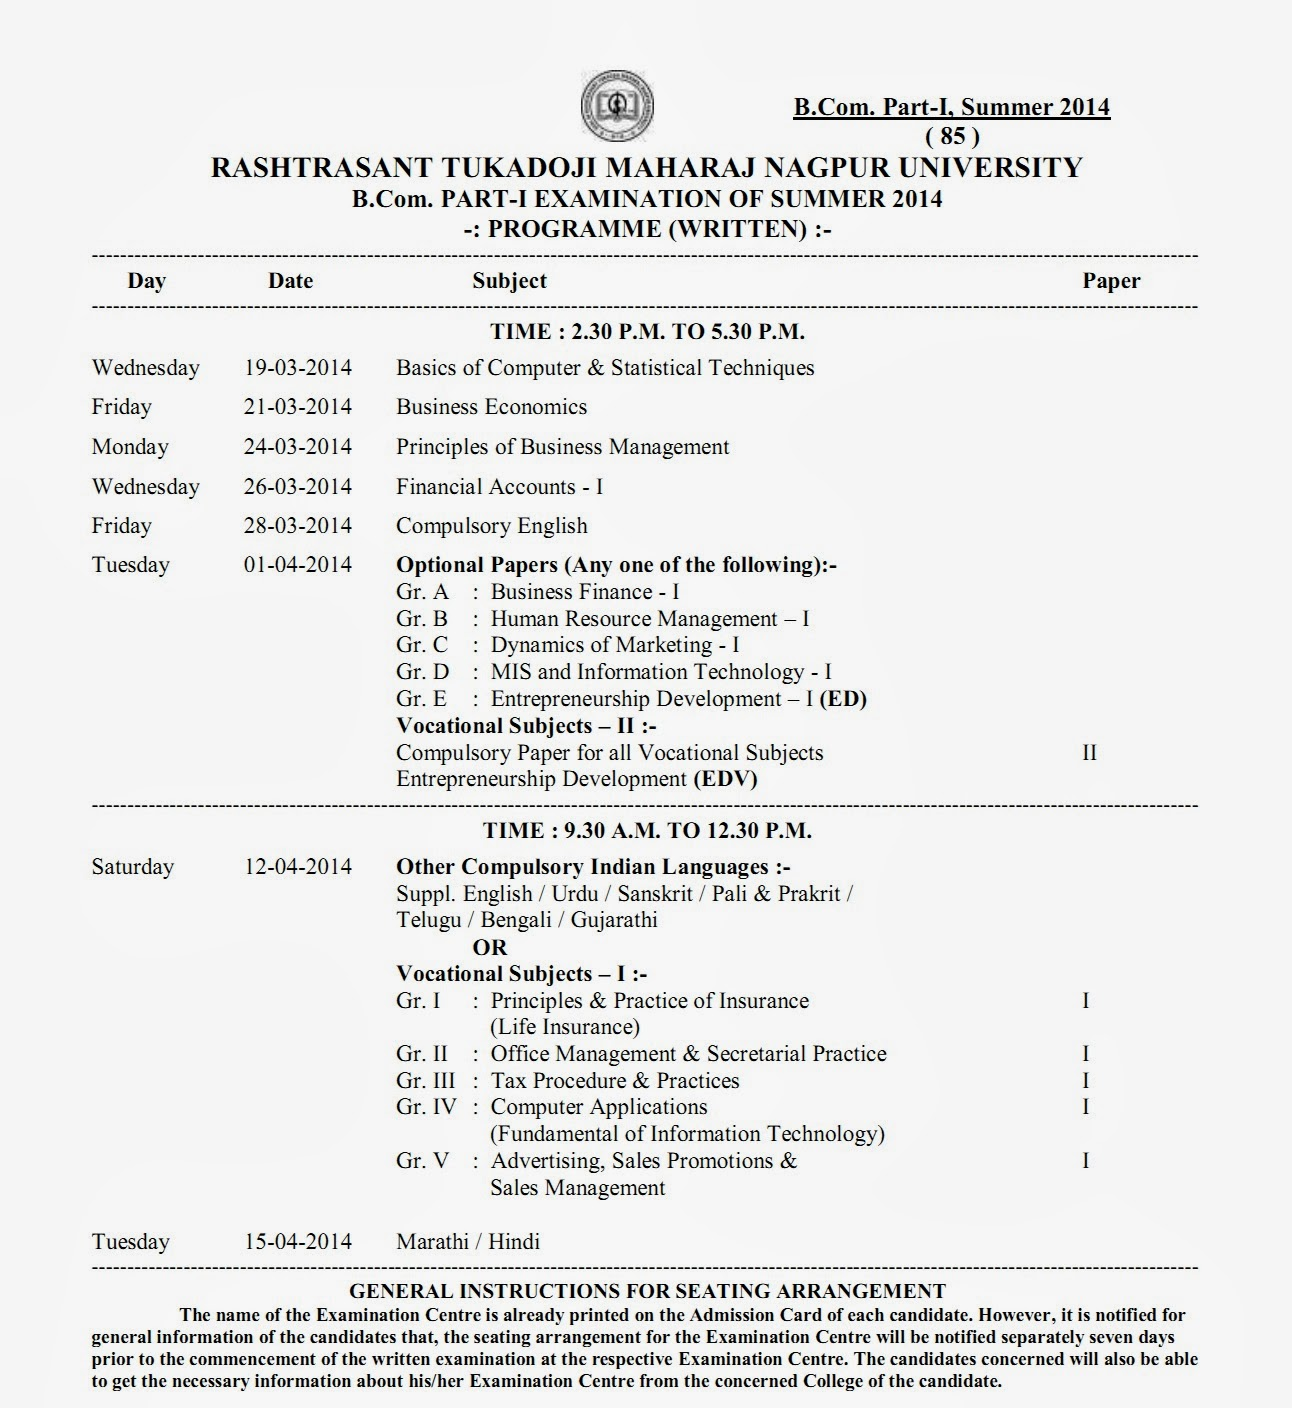 B Com Part 1 Summer 2014 Timetable RTM Nagpur University